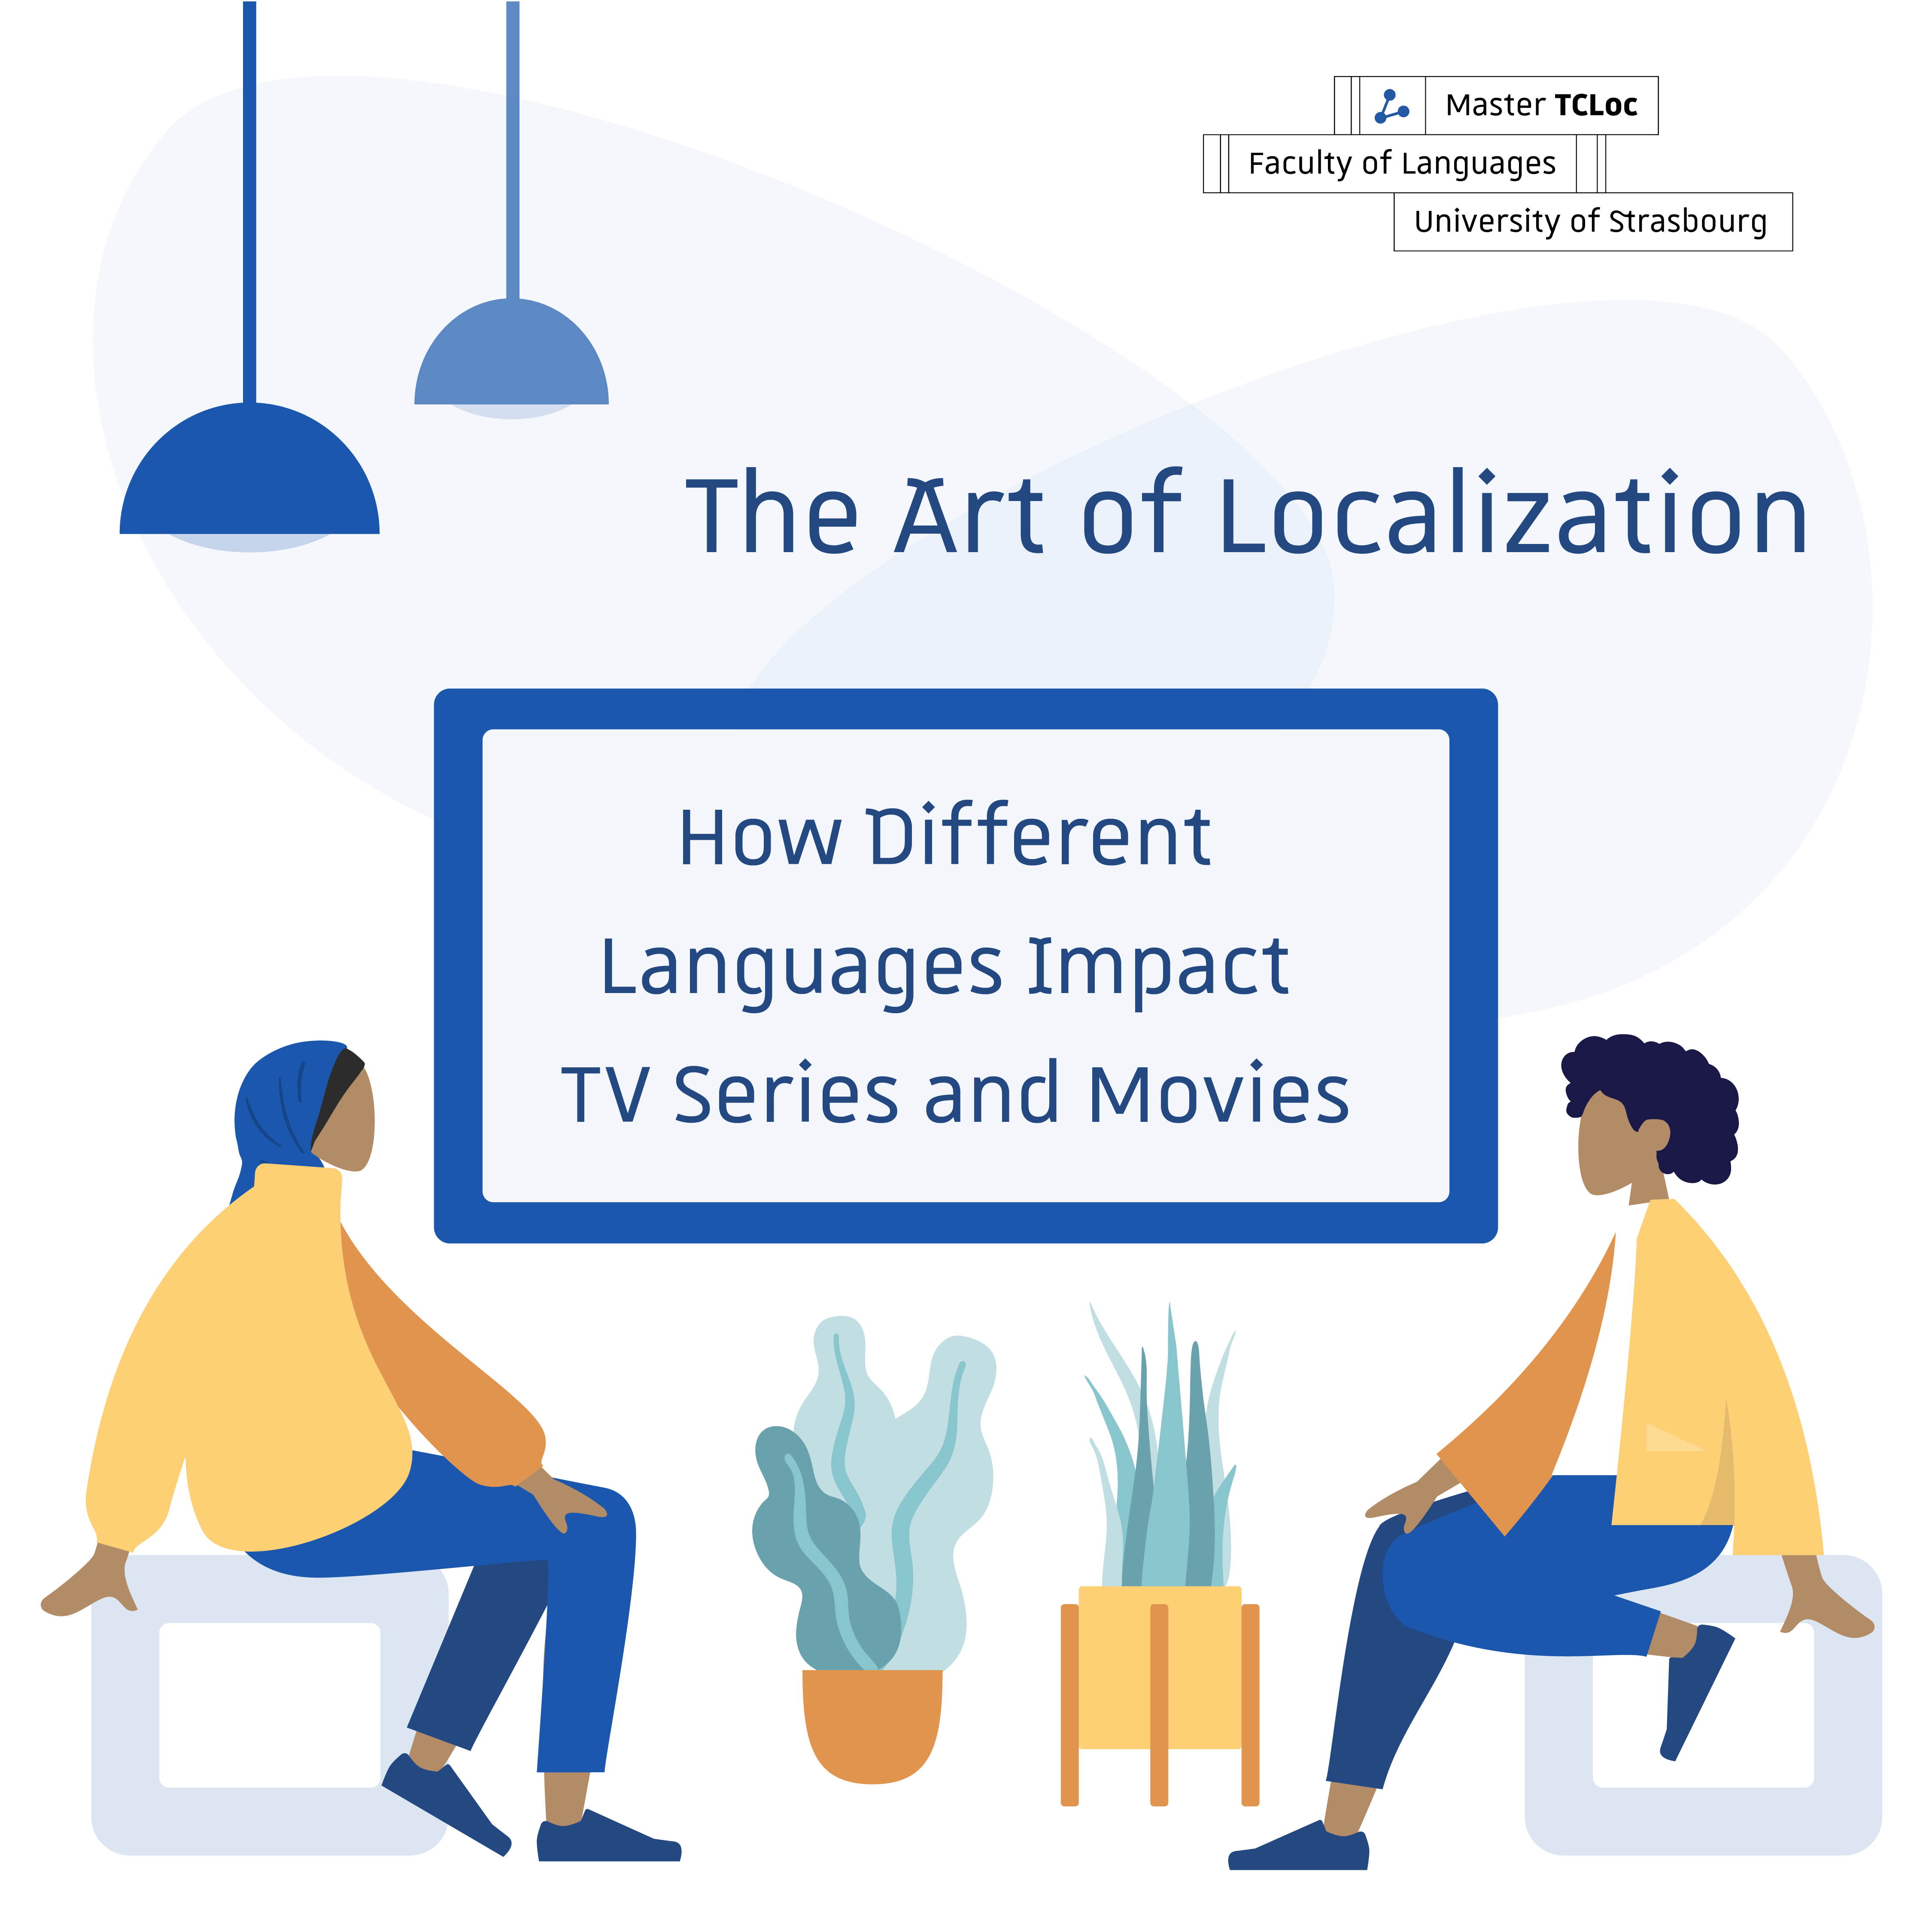 the art of localization : how different languages impact tv series and movies